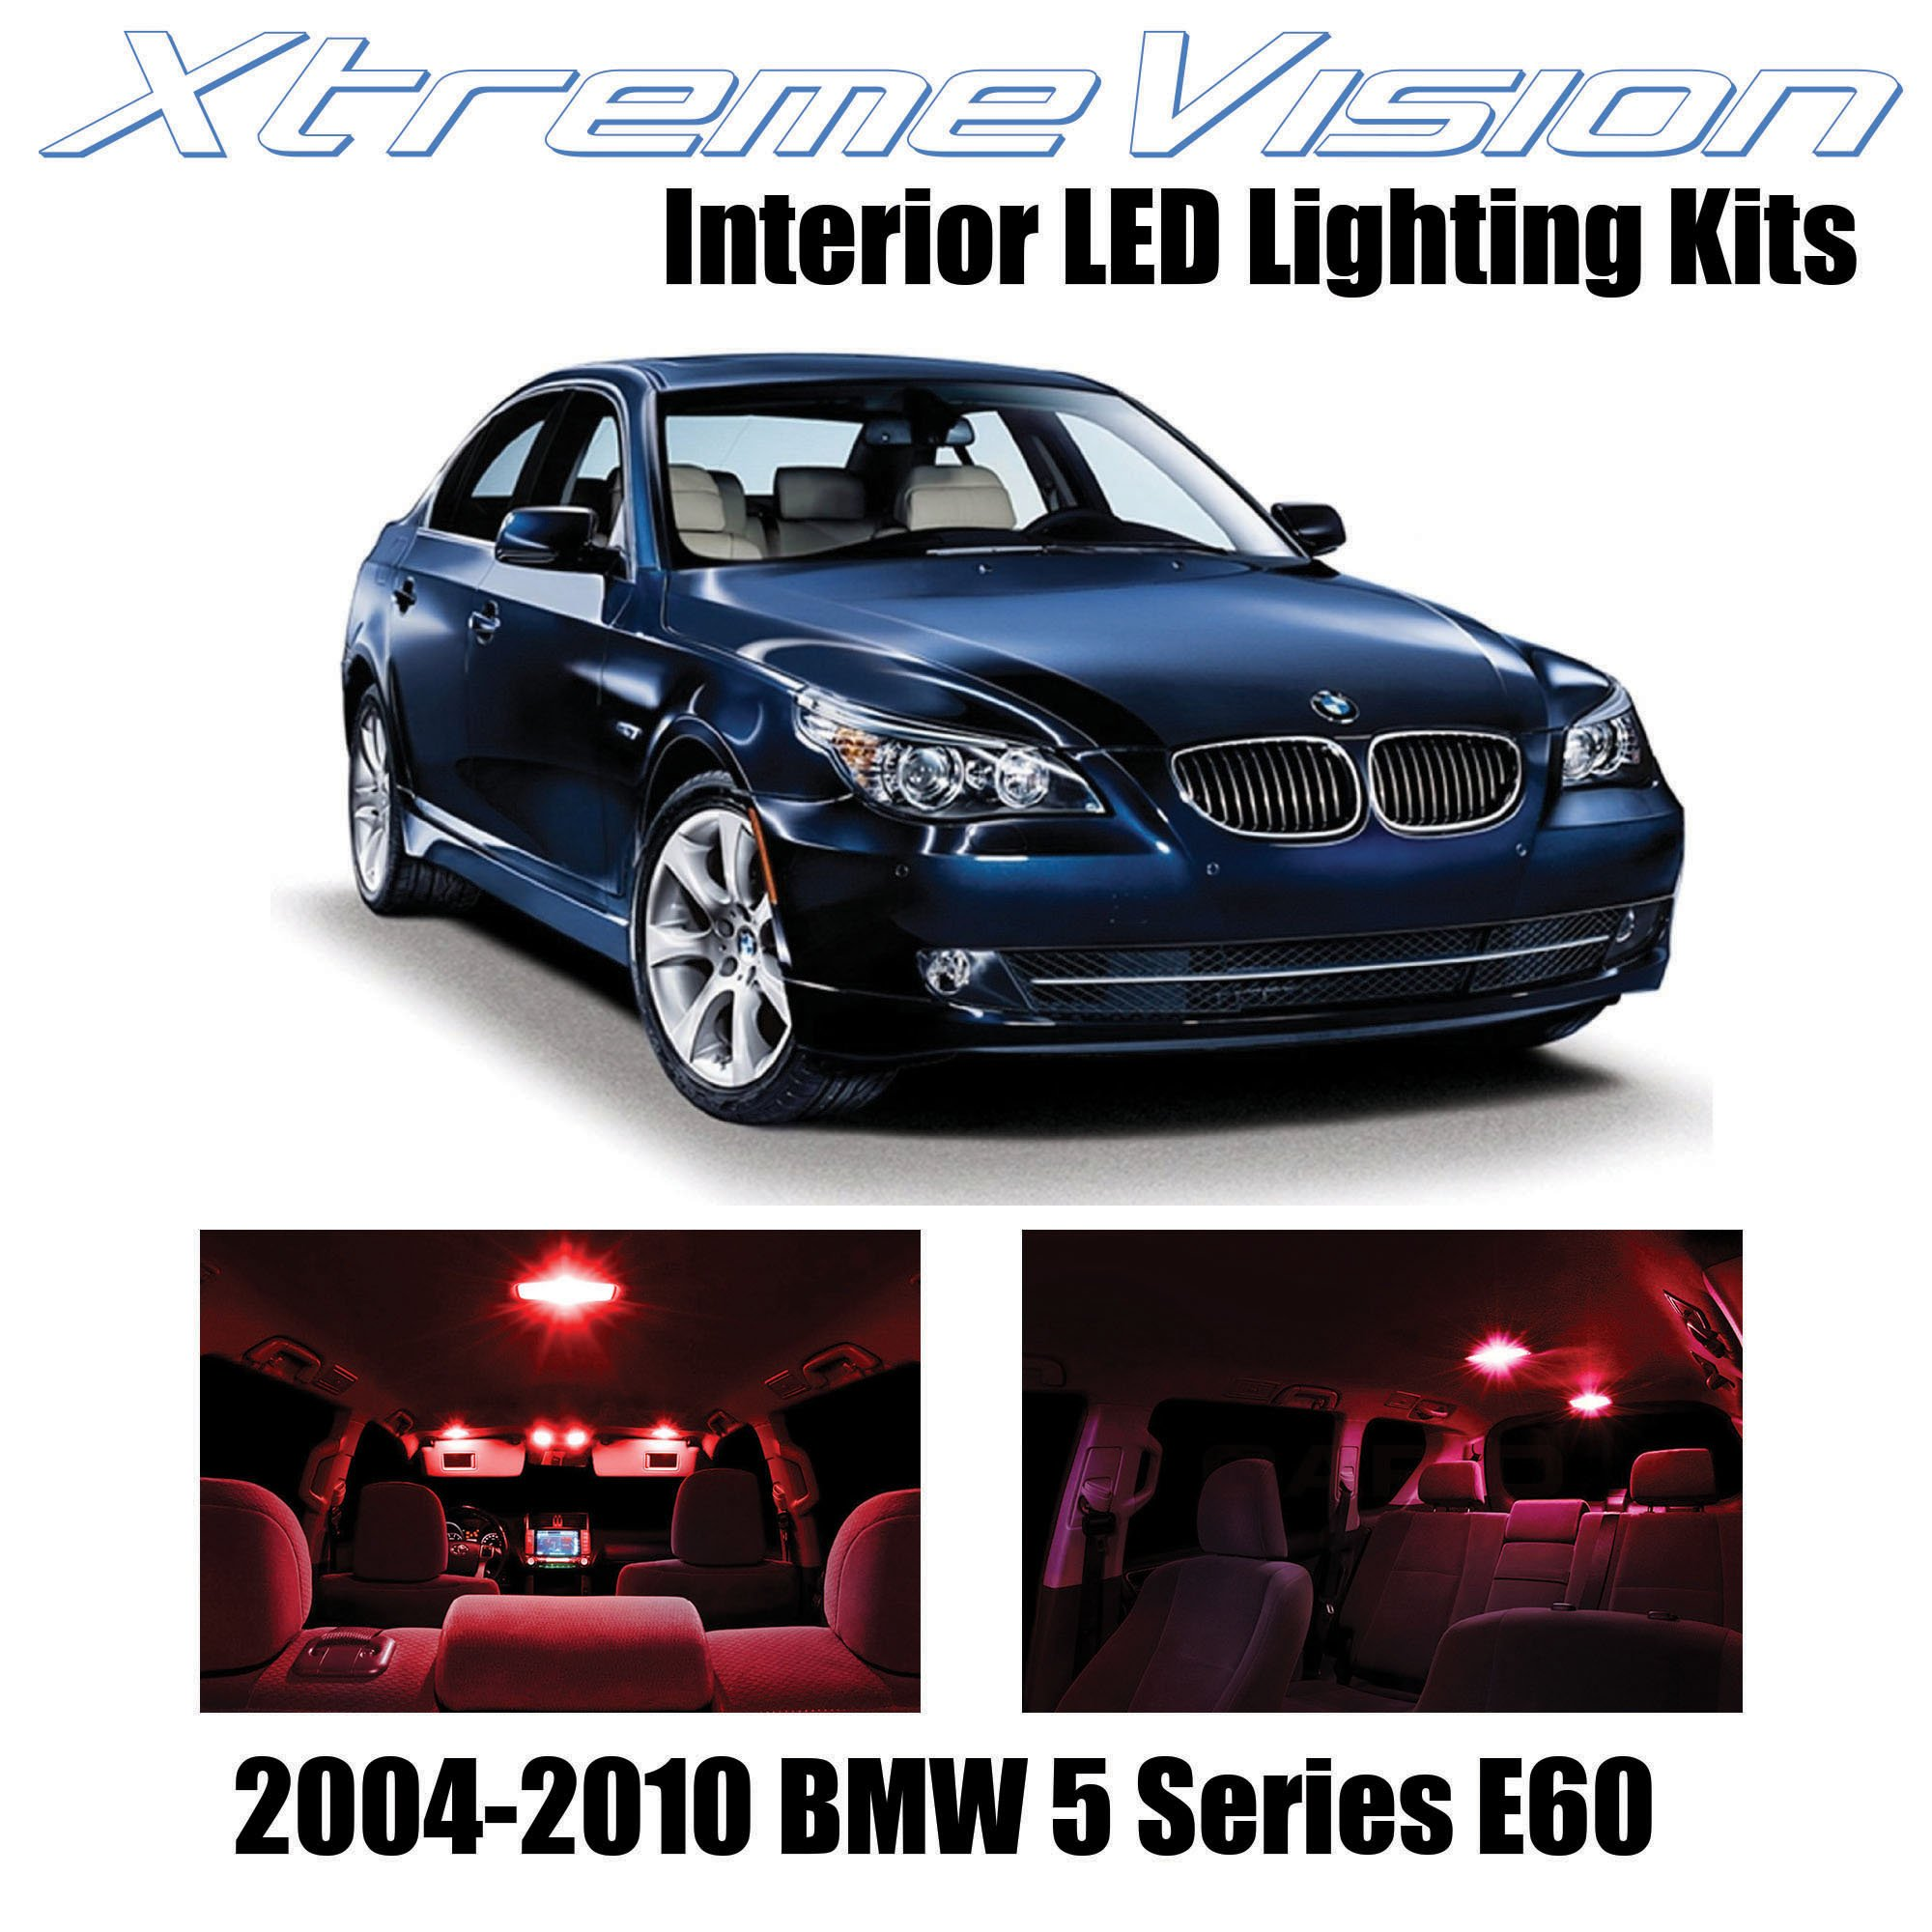 Xtremevision Interior Led For Bmw 5 Series E60 2004 2010 17 Pieces Red Interior Led Kit Installation Tool